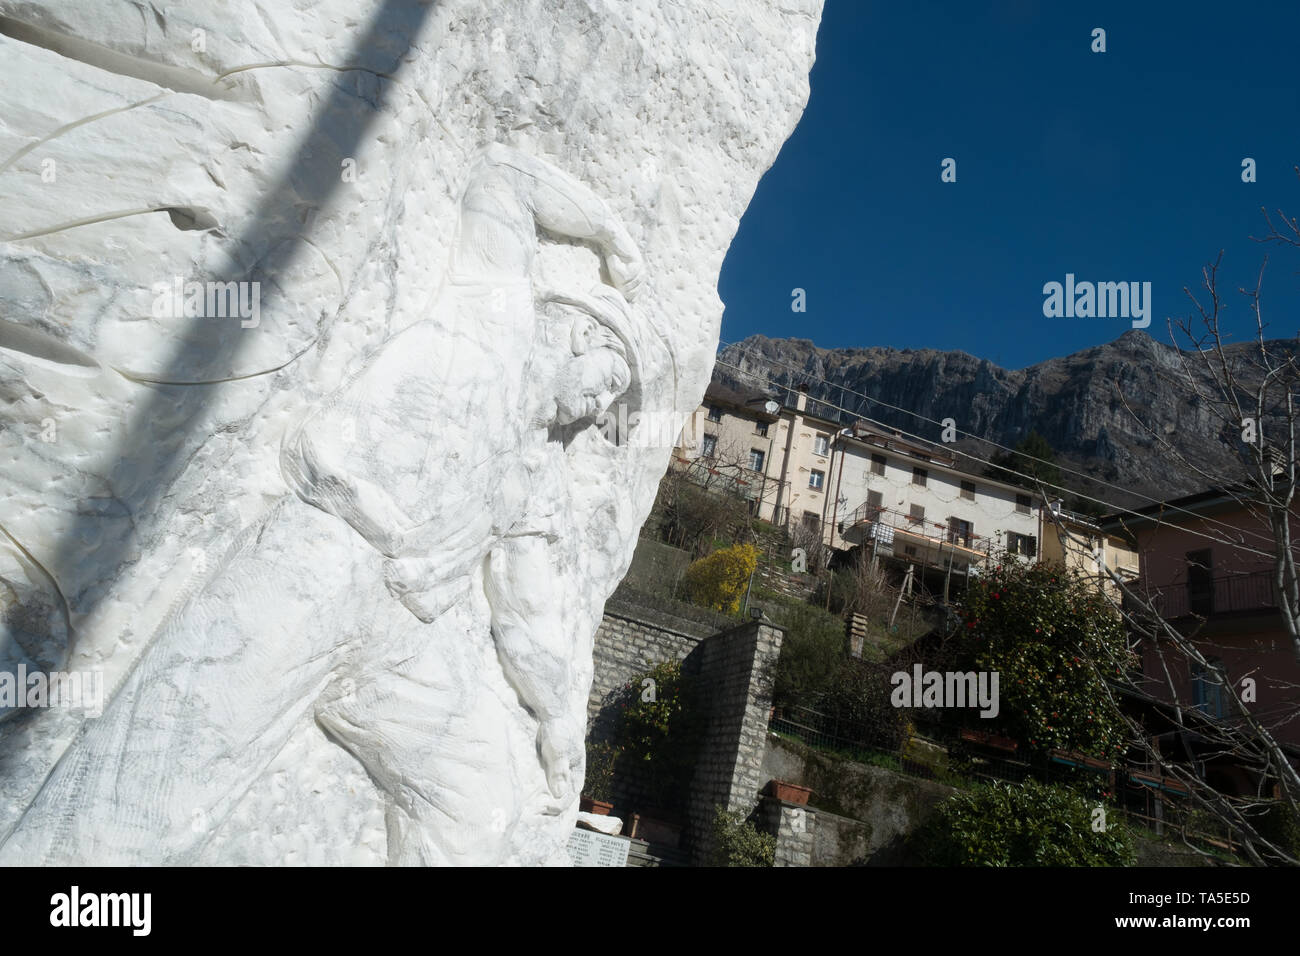 Levigliani, one of the many villages in the mountains of marble - Stock Image